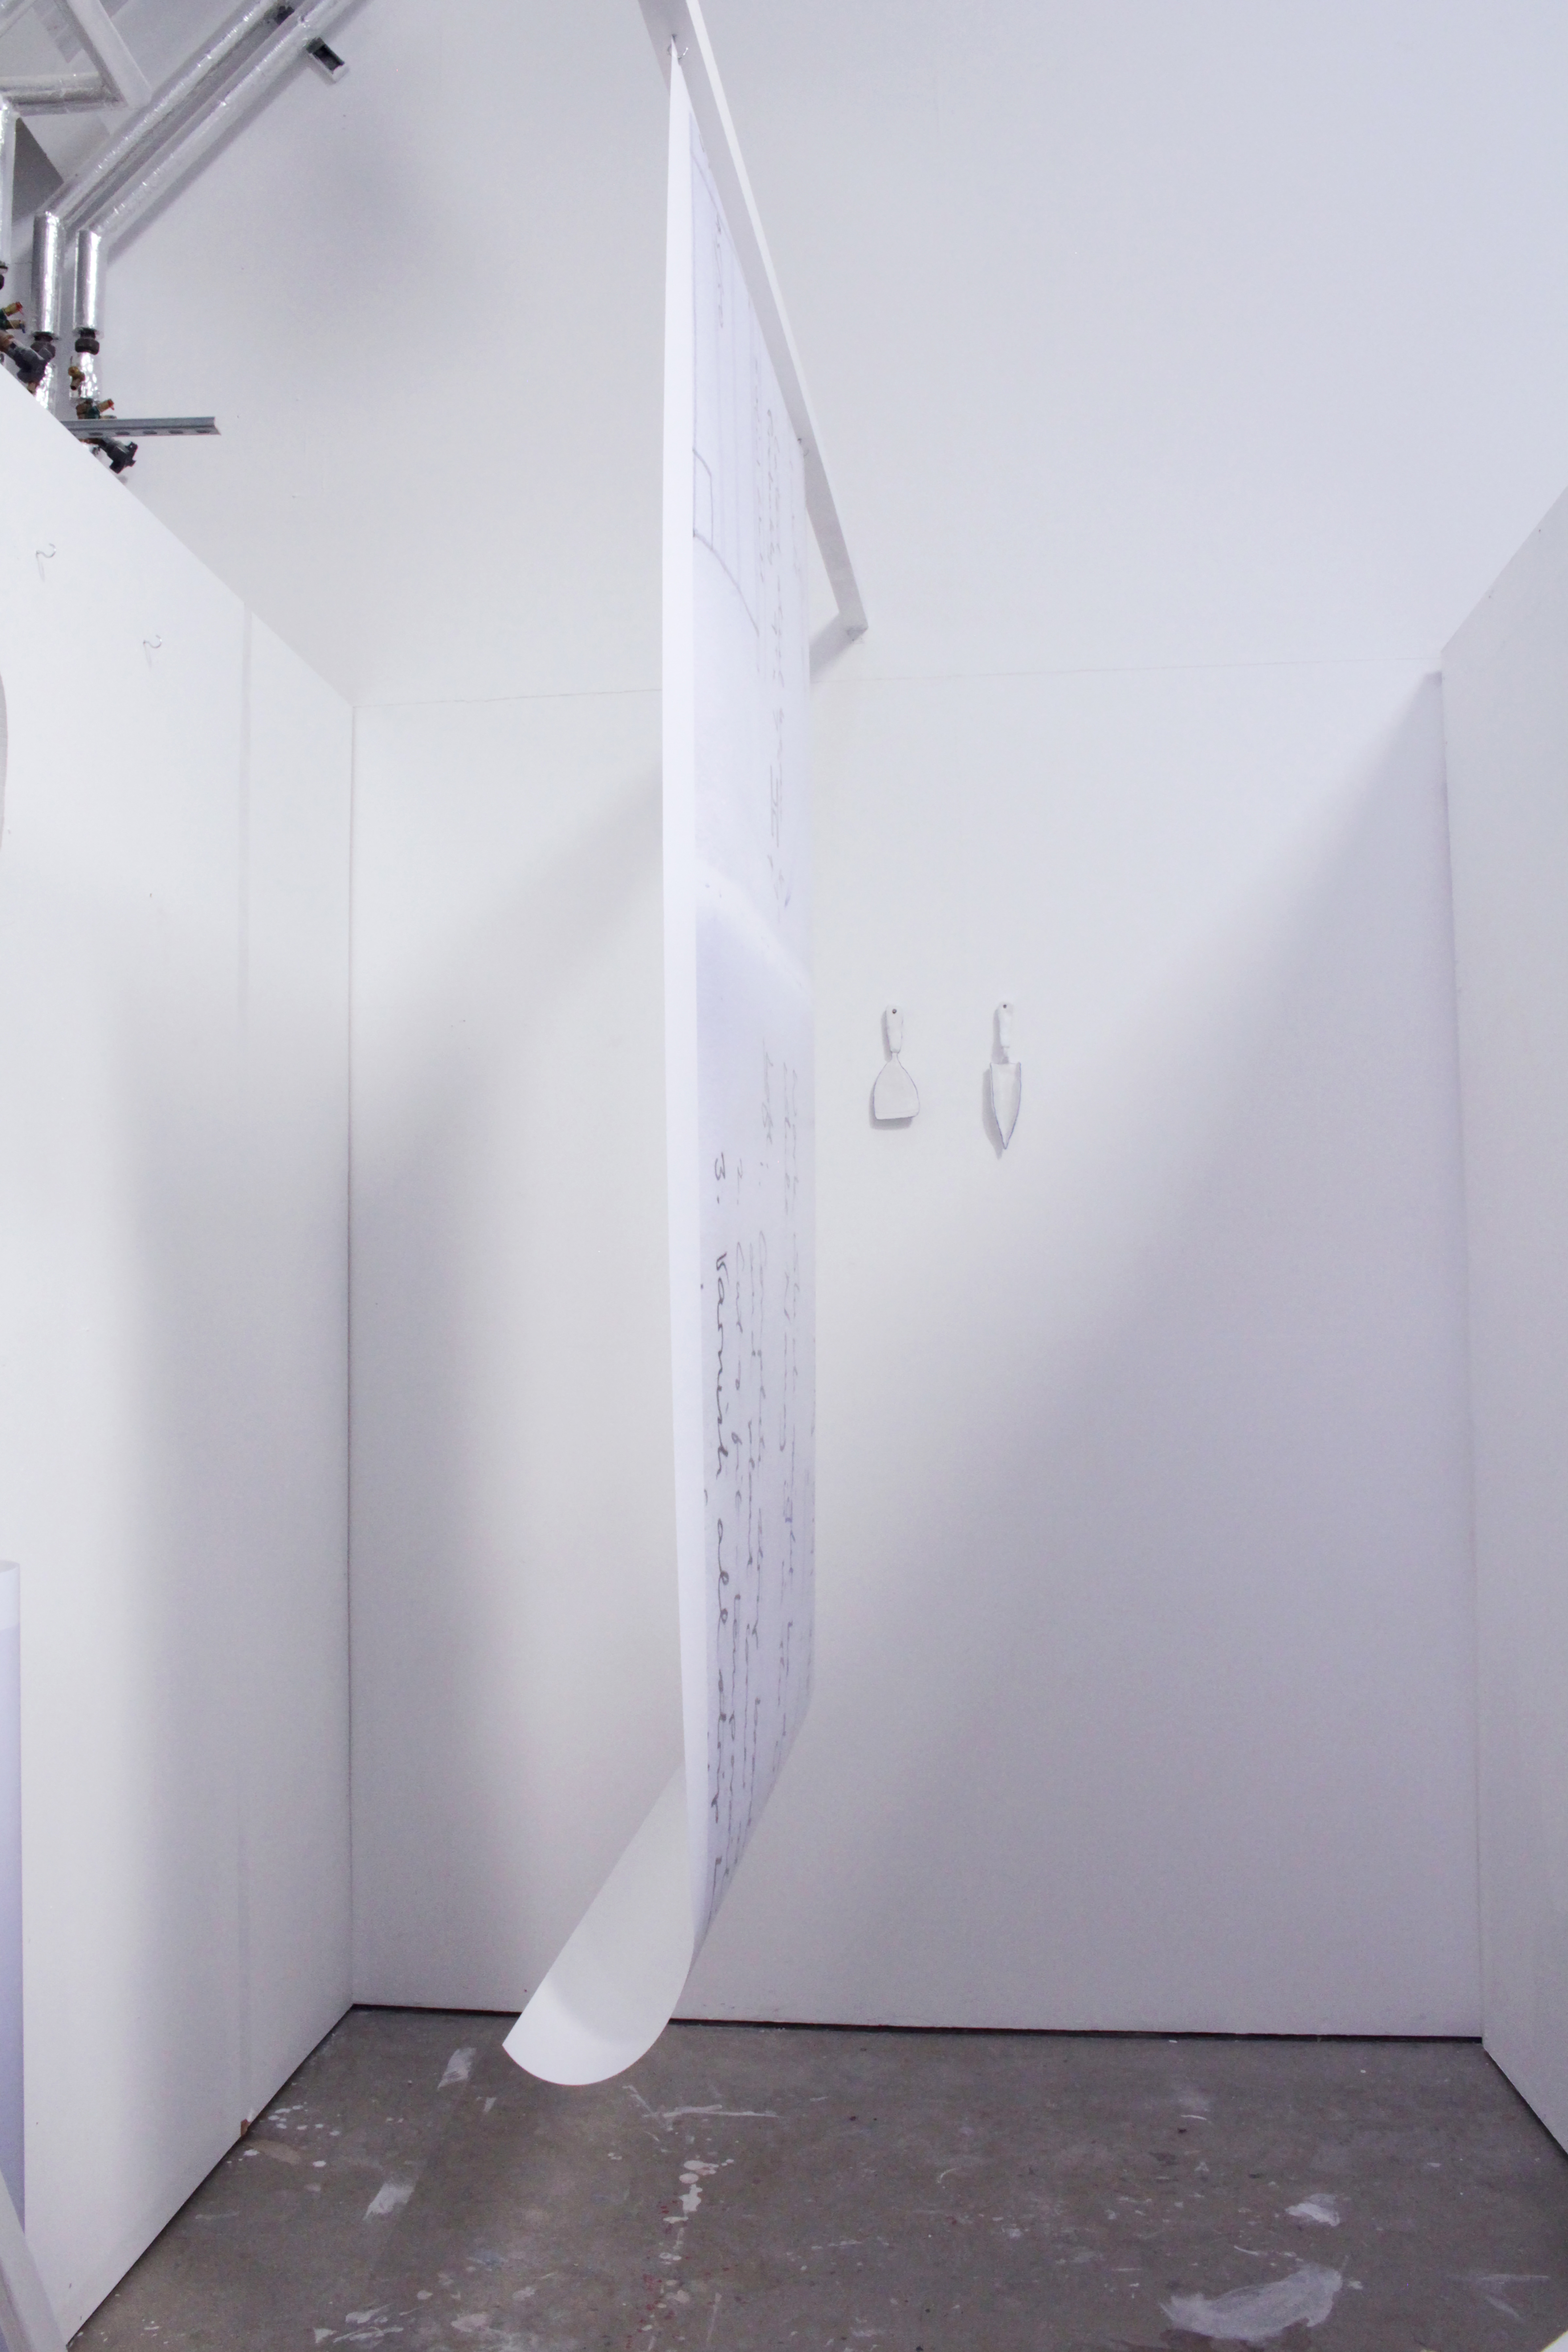 The video depicts a portrait view of an enlarged to do list about 1 metre in width and 2 metres in length hanging from a bar raised around 7 foot from the floor in the middle of a small rectangular studio space. The room is empty and blank. The scroll mimics a length of wallpaper.